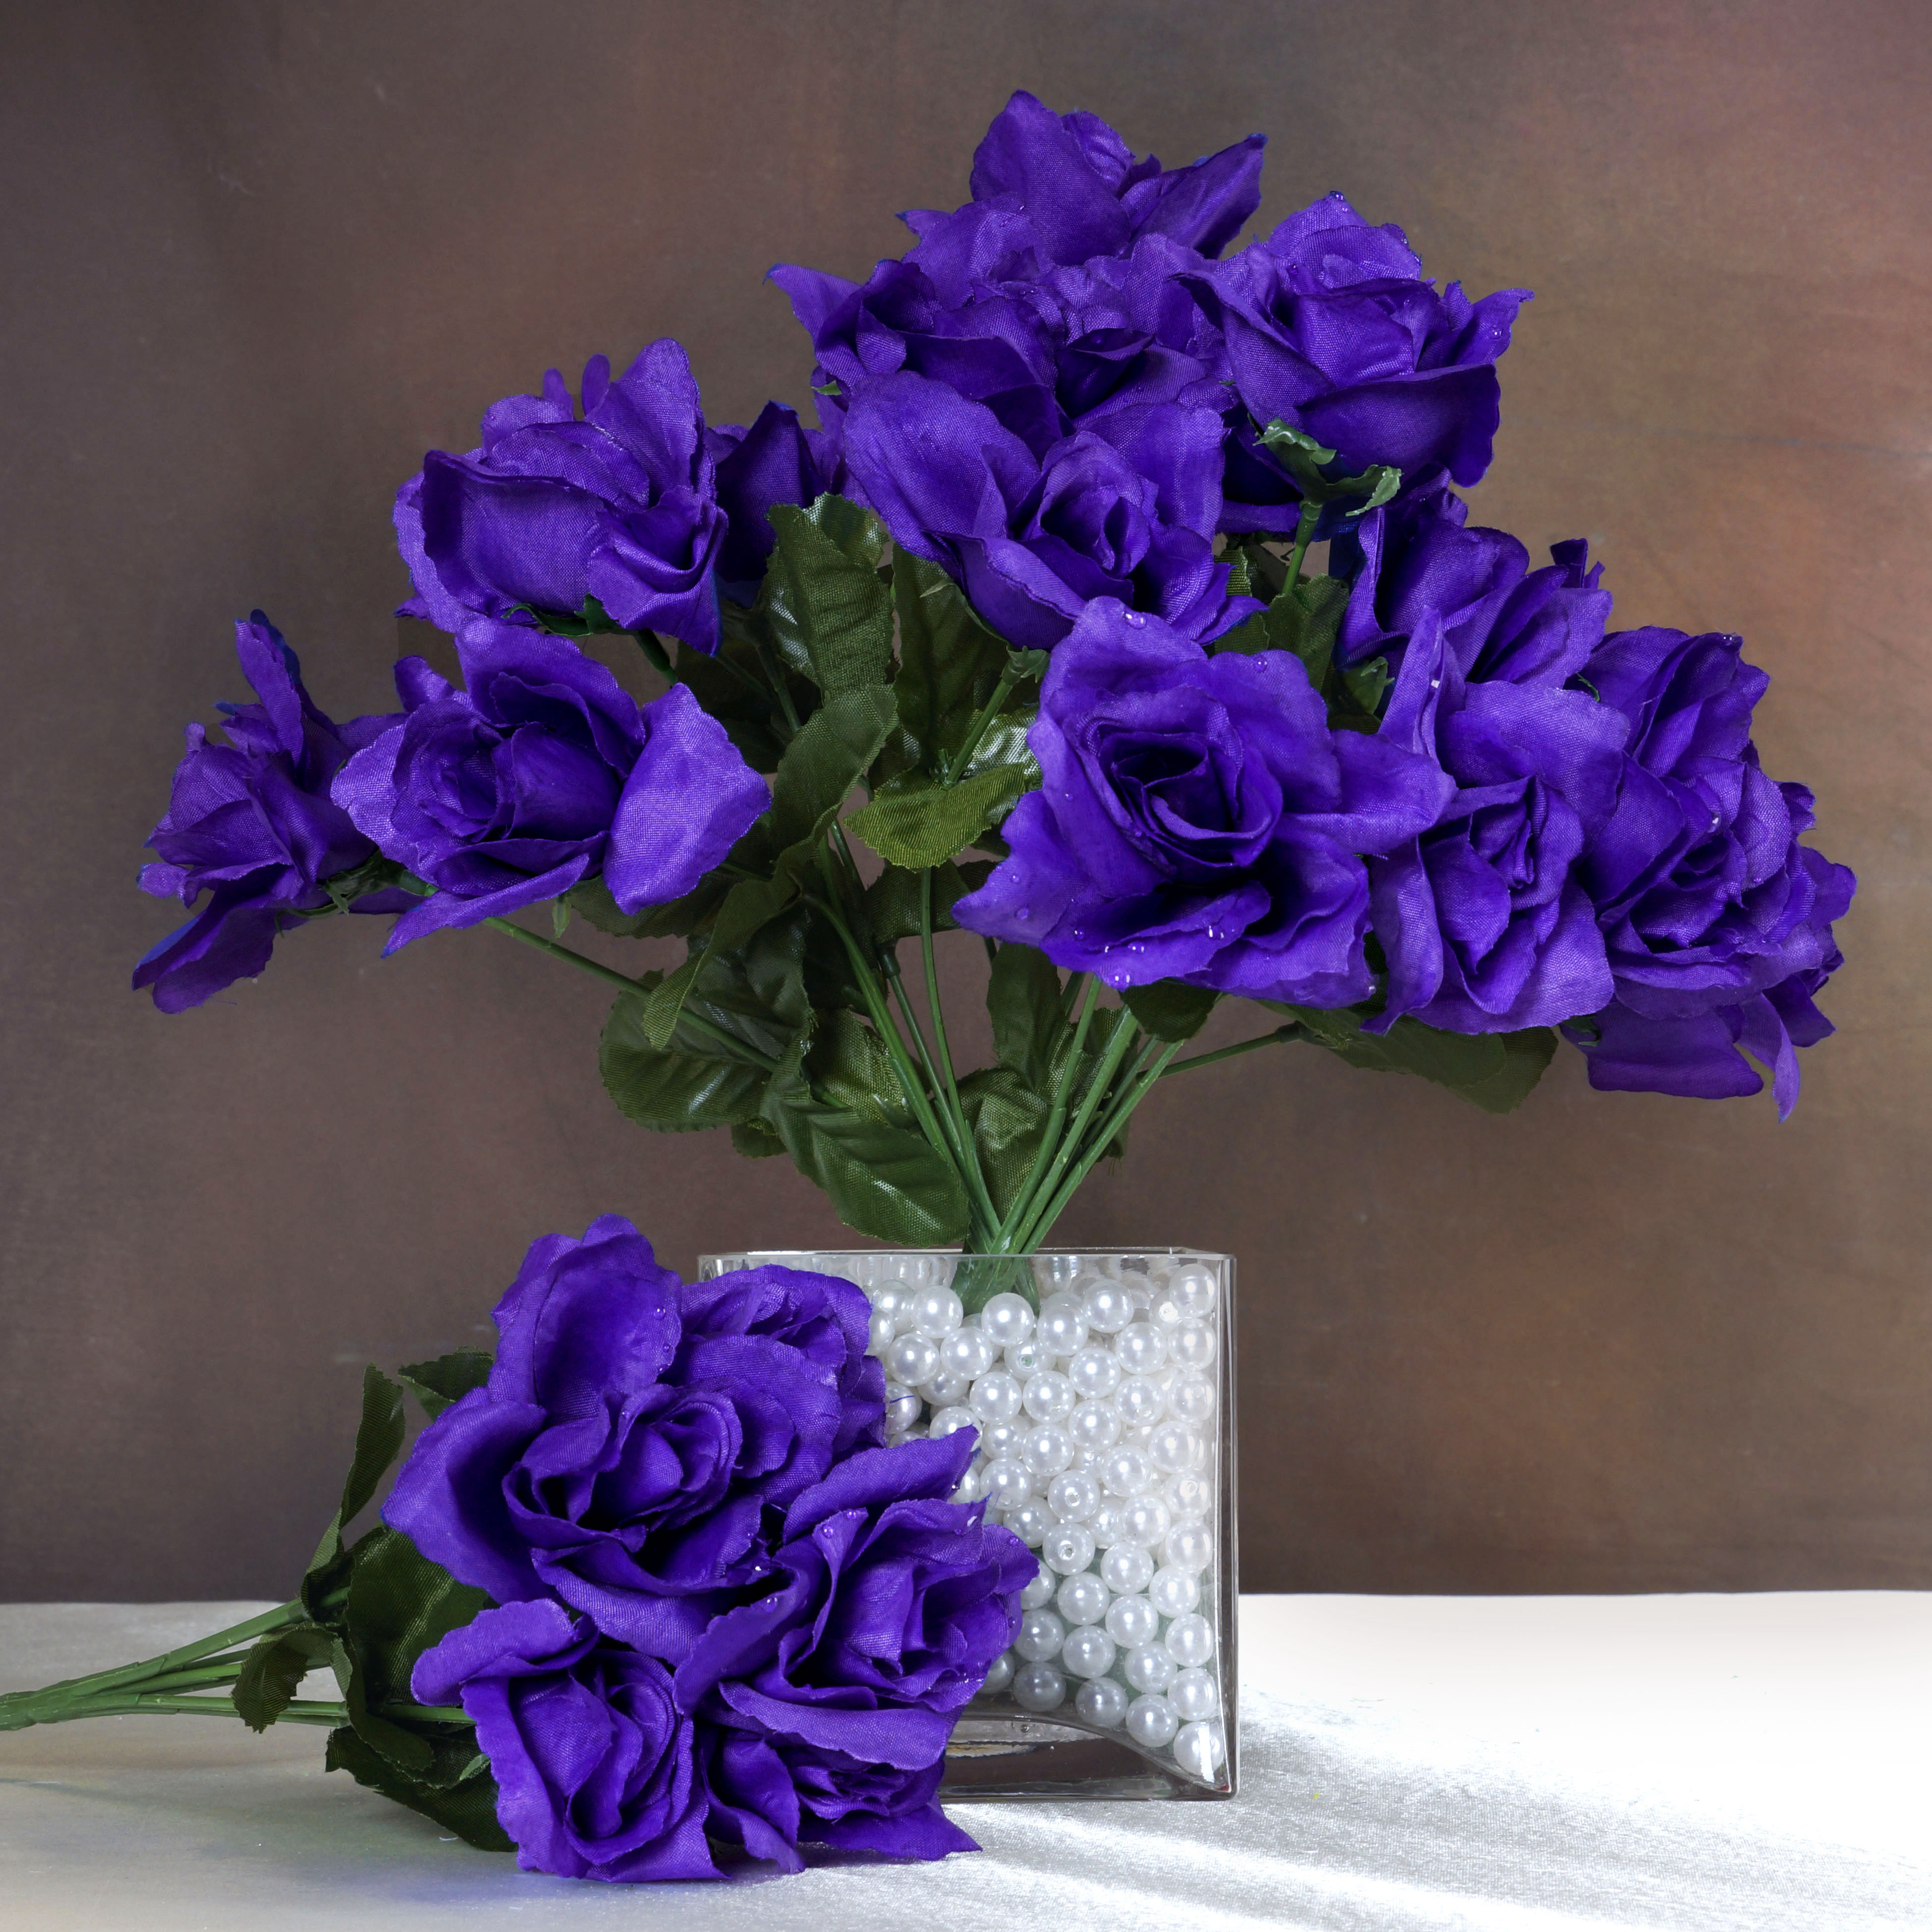 Wedding Flowers Cheap Online: 168 Silk OPEN ROSES WEDDING Bouquets FLOWERS Centerpieces